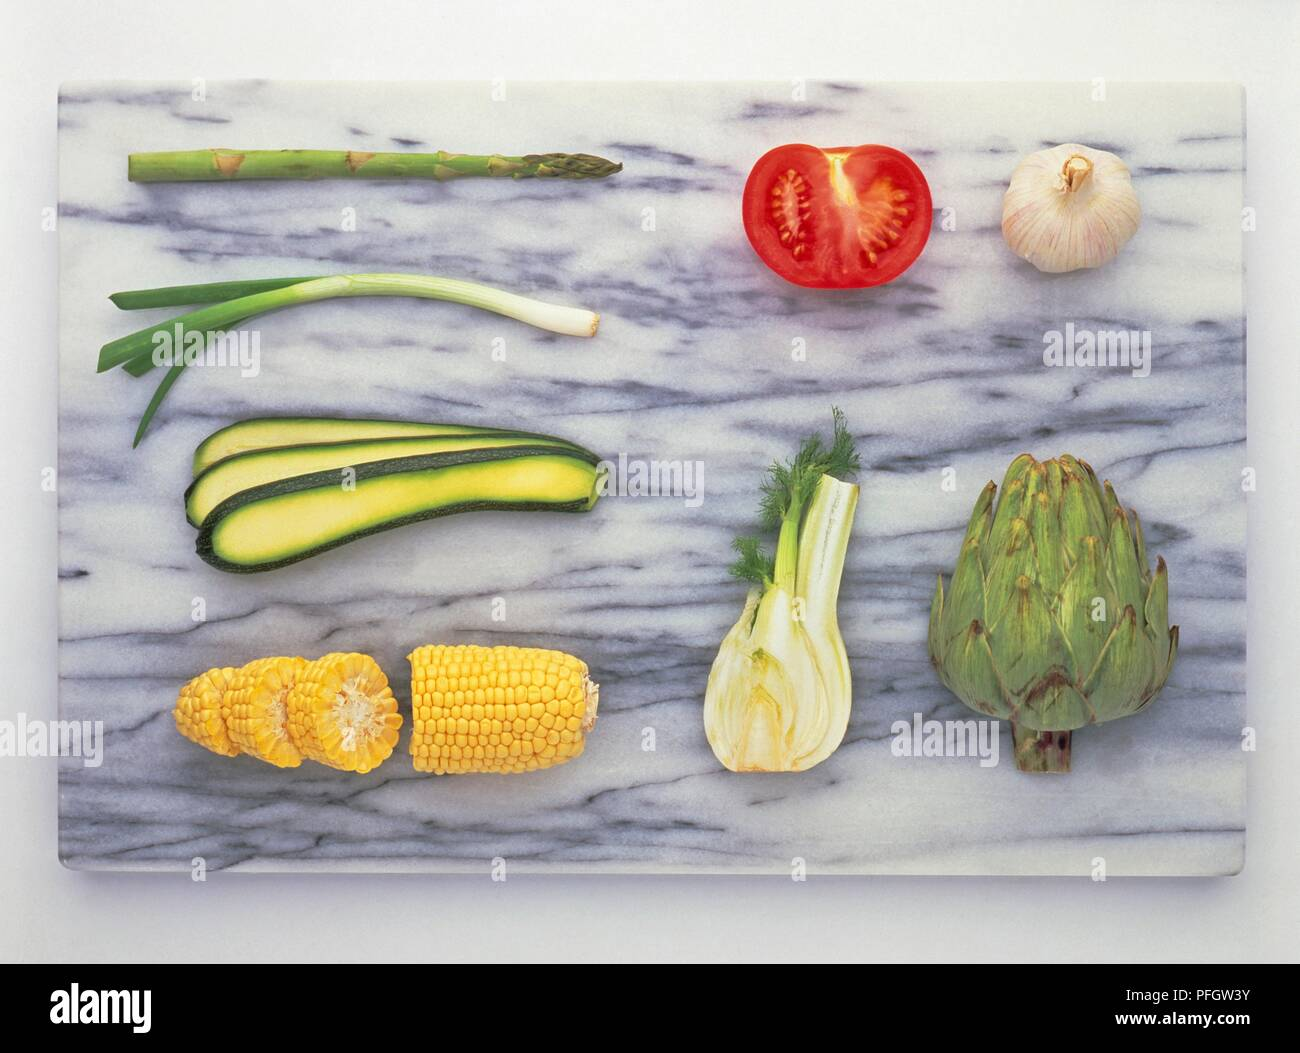 Various vegetables on marble chopping board, asparagus, spring onion, courgette, sweetcorn, fennel, artichoke, tomato, garlic Stock Photo